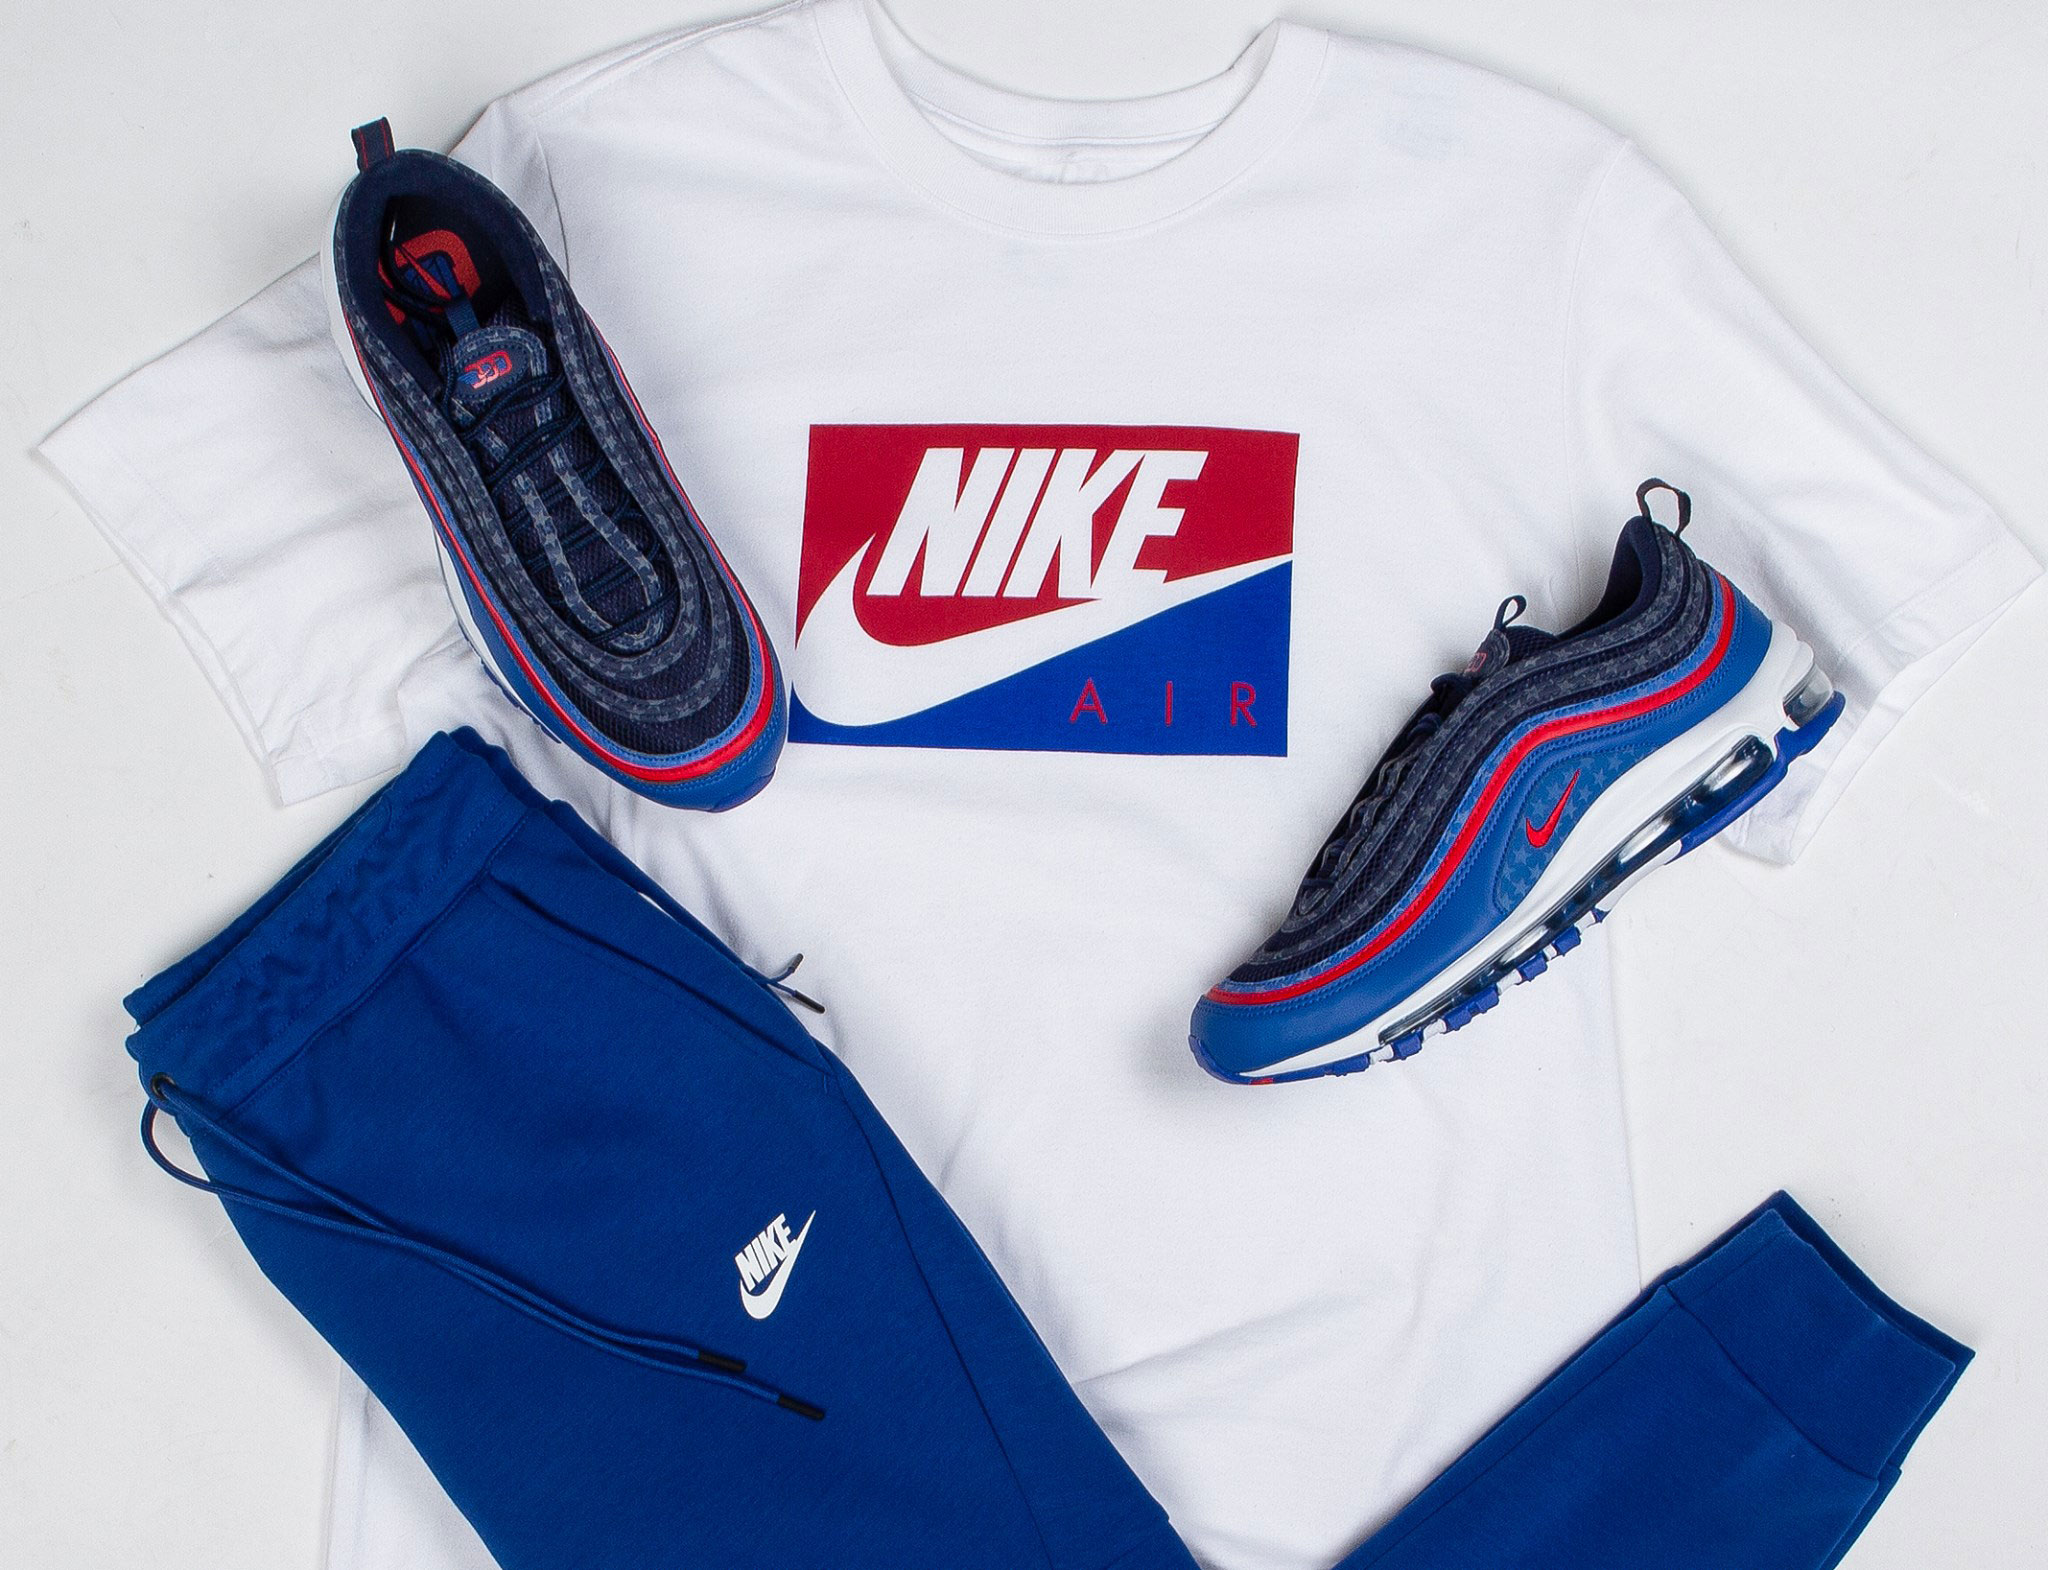 nike-air-max-97-dallas-home-away-clothing